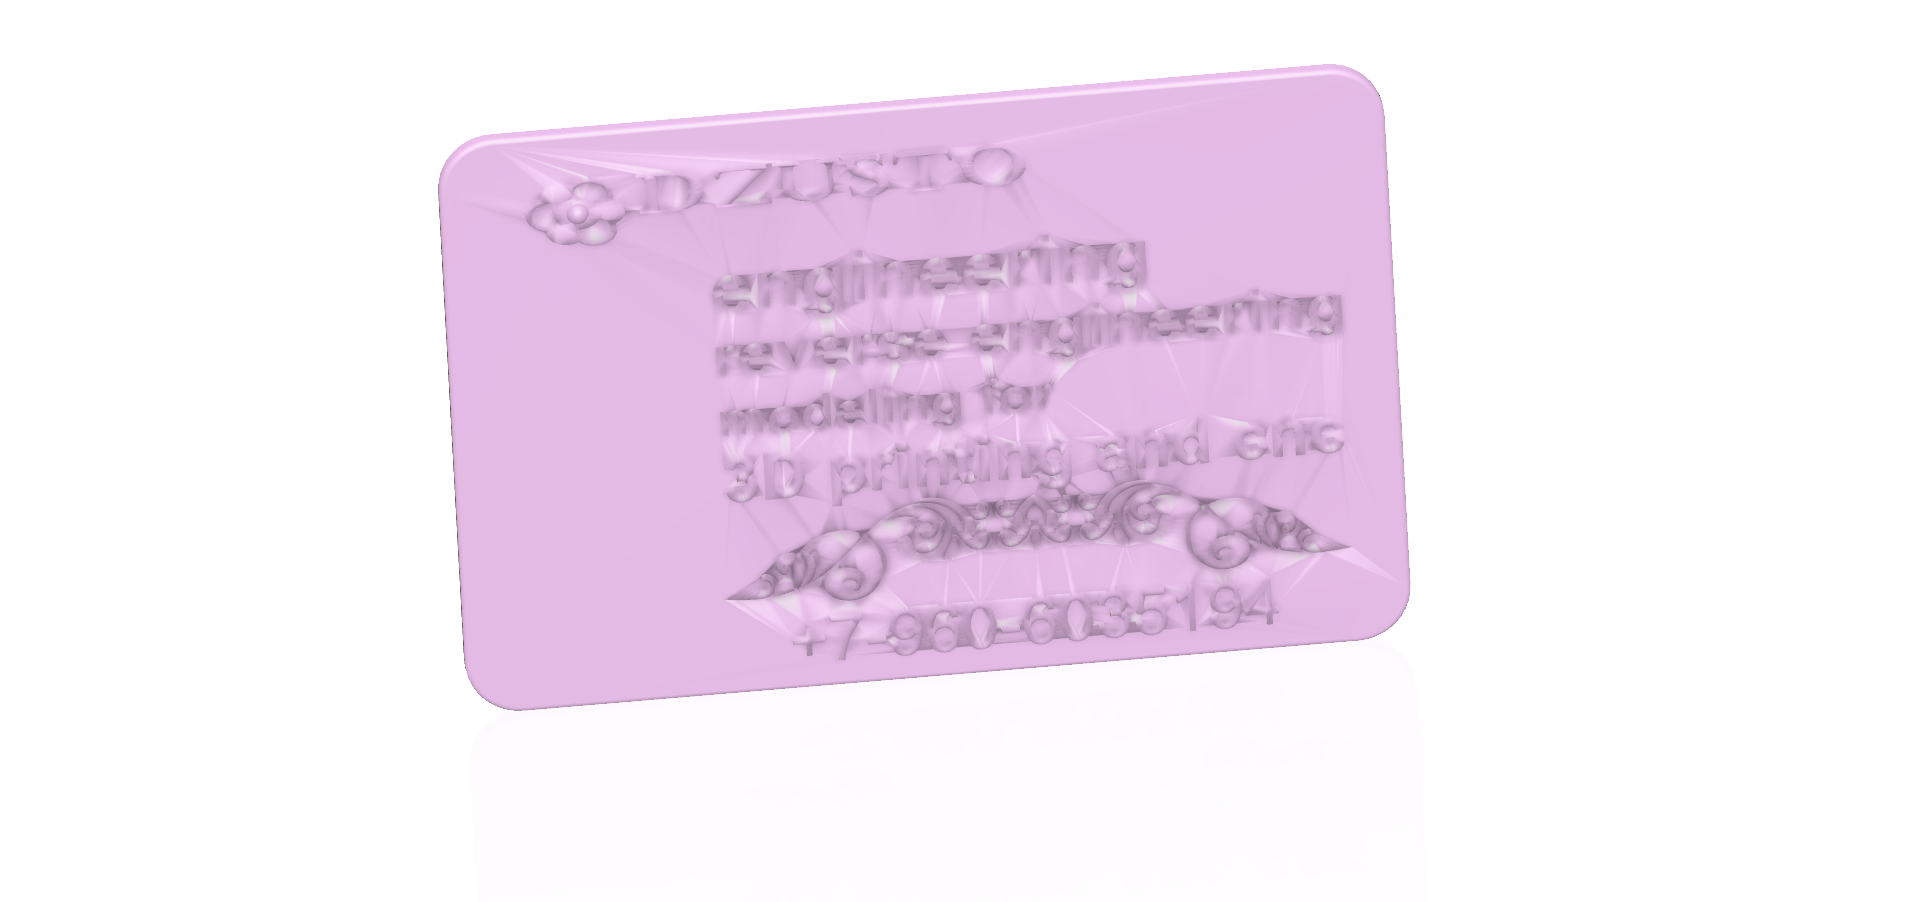 business card 01 v4 STL-91.png Download free STL file Modeling product engineering and reverse-engineering  for CNC machines and 3D printing • 3D printable object, Dzusto